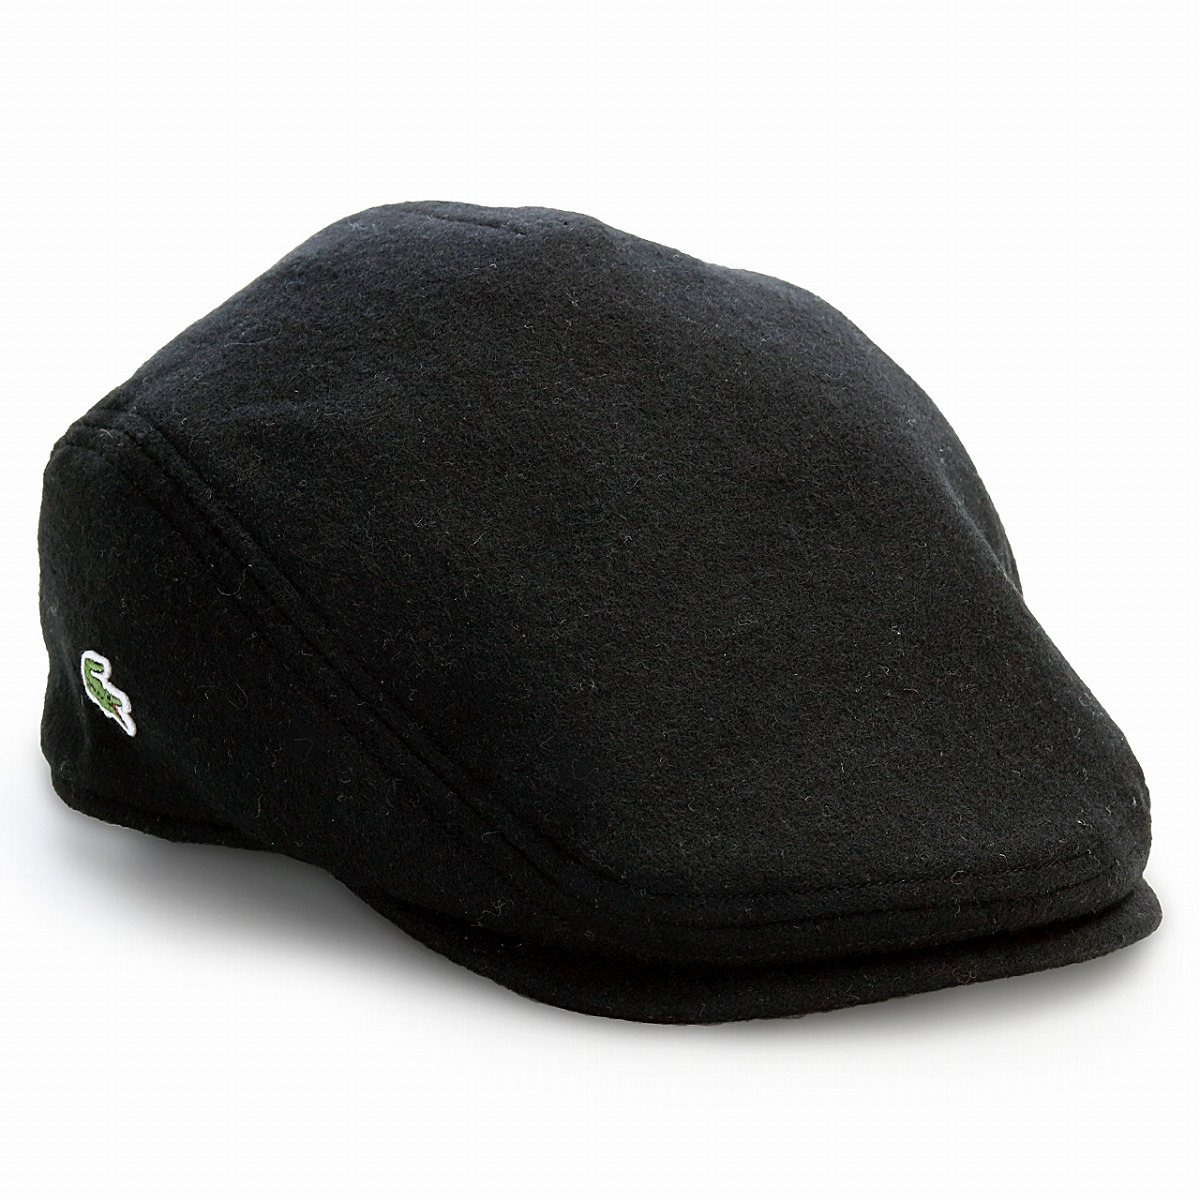 best service 4a2df ffc45 ... Crocodile brand casual clothes black black  ivy cap  gift present made  in hunting cap ...